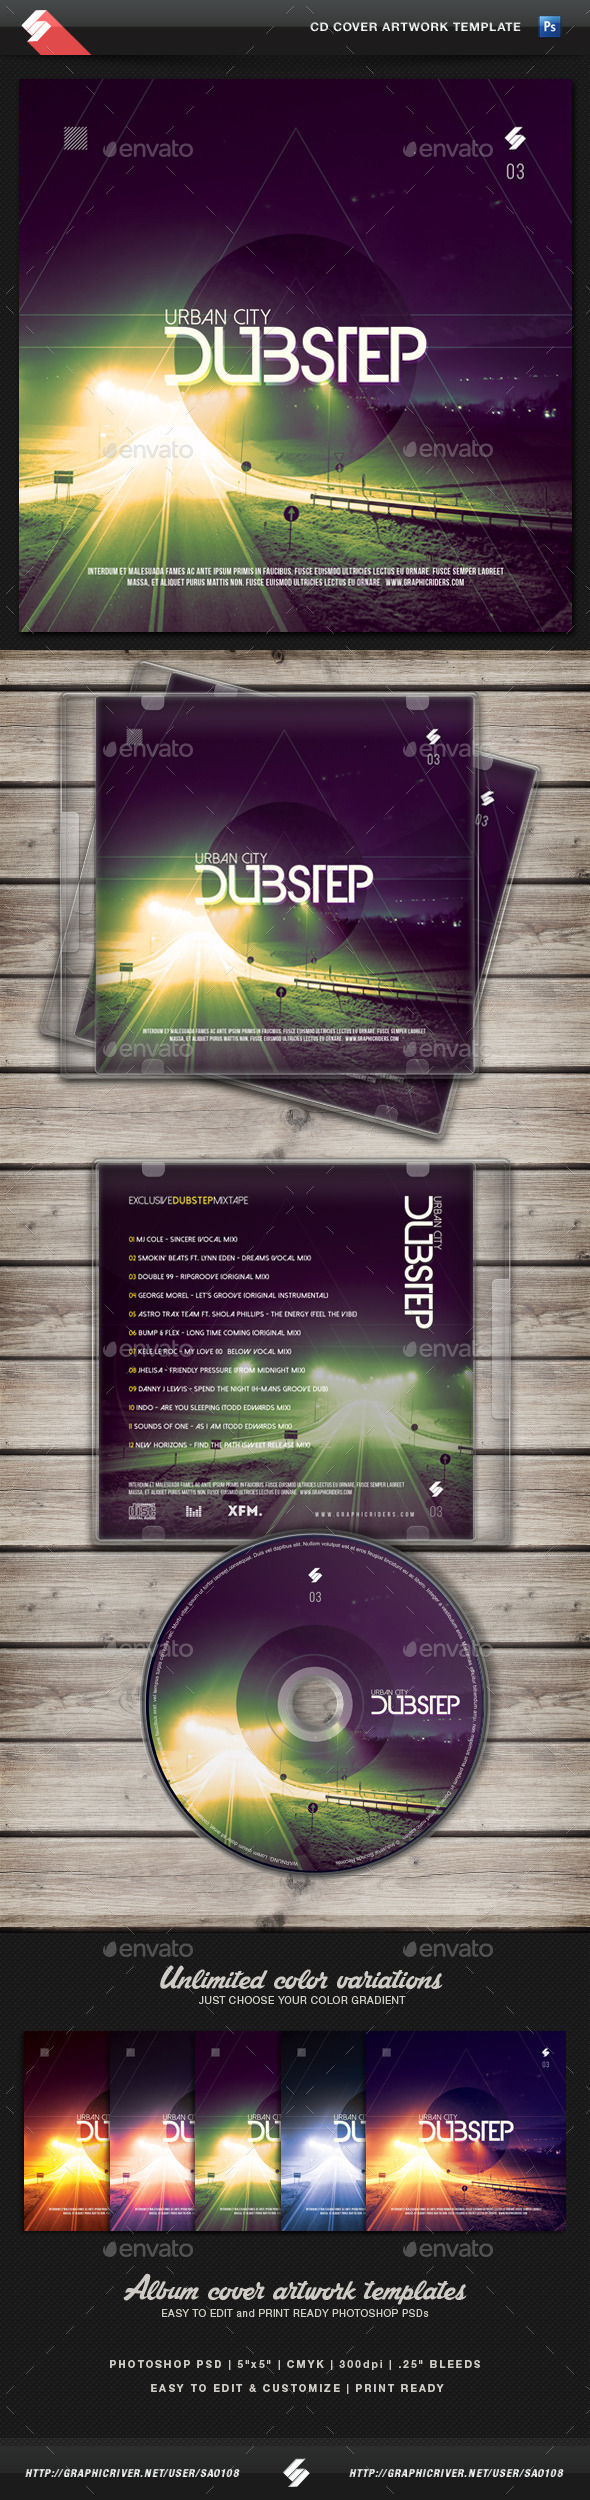 cd case artwork template - urban city dubstep vol 3 cd cover template by sao108